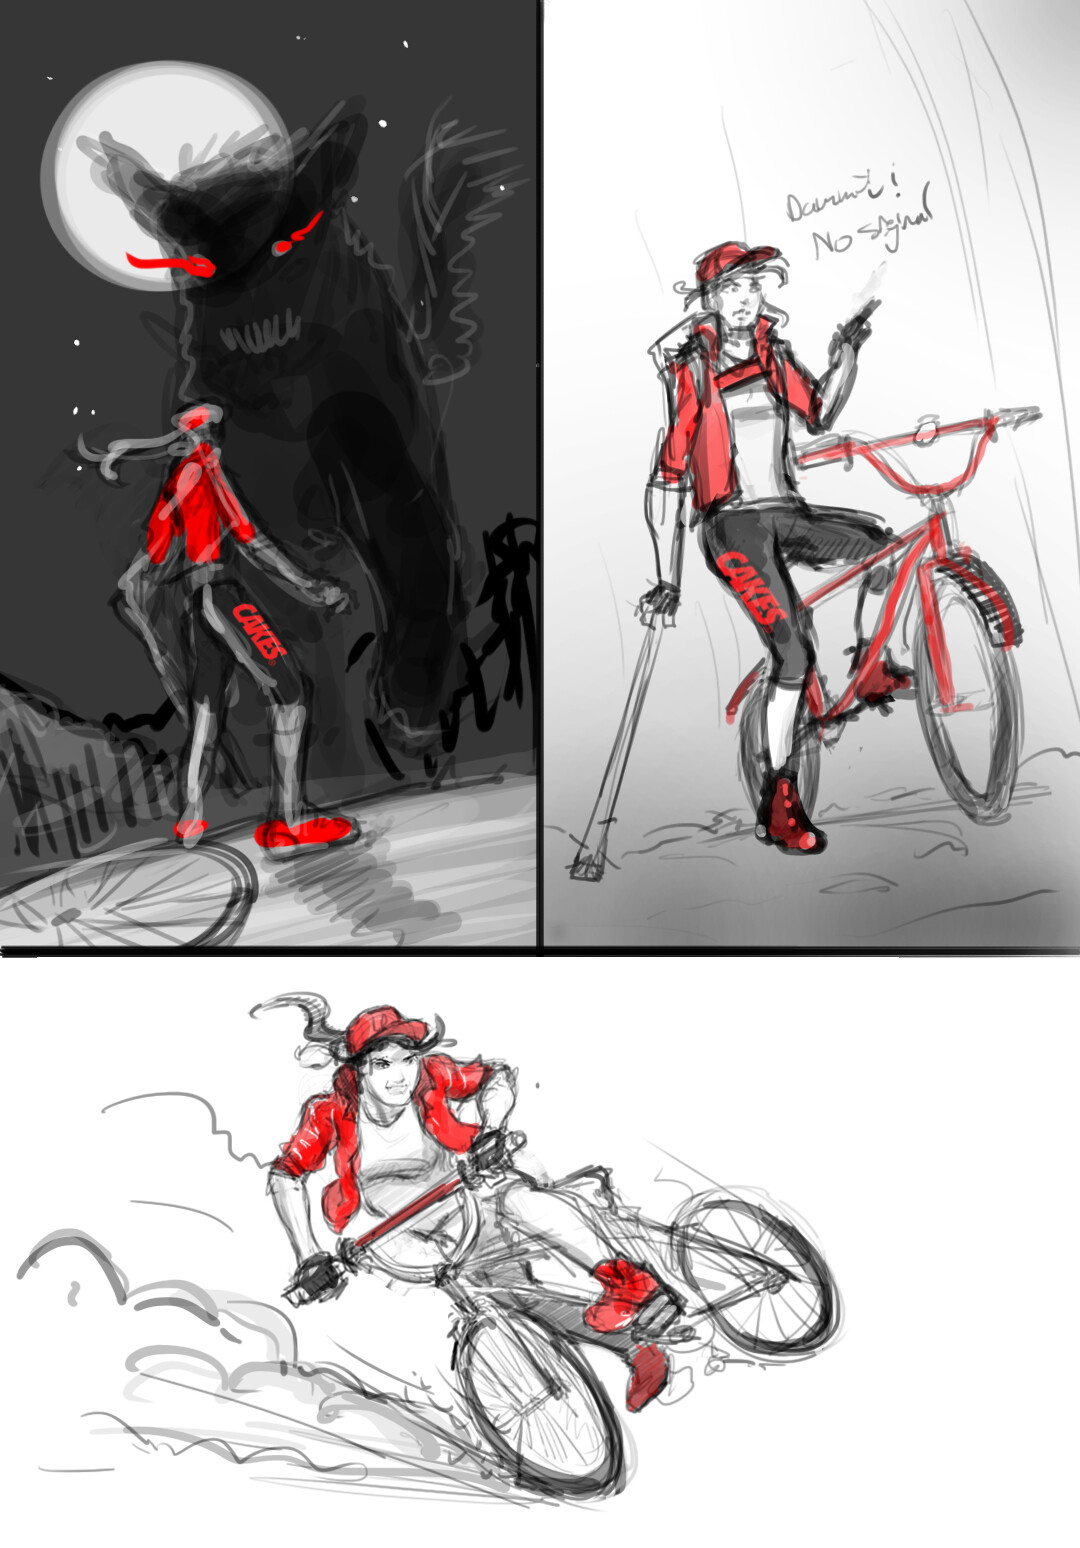 Some more explorations